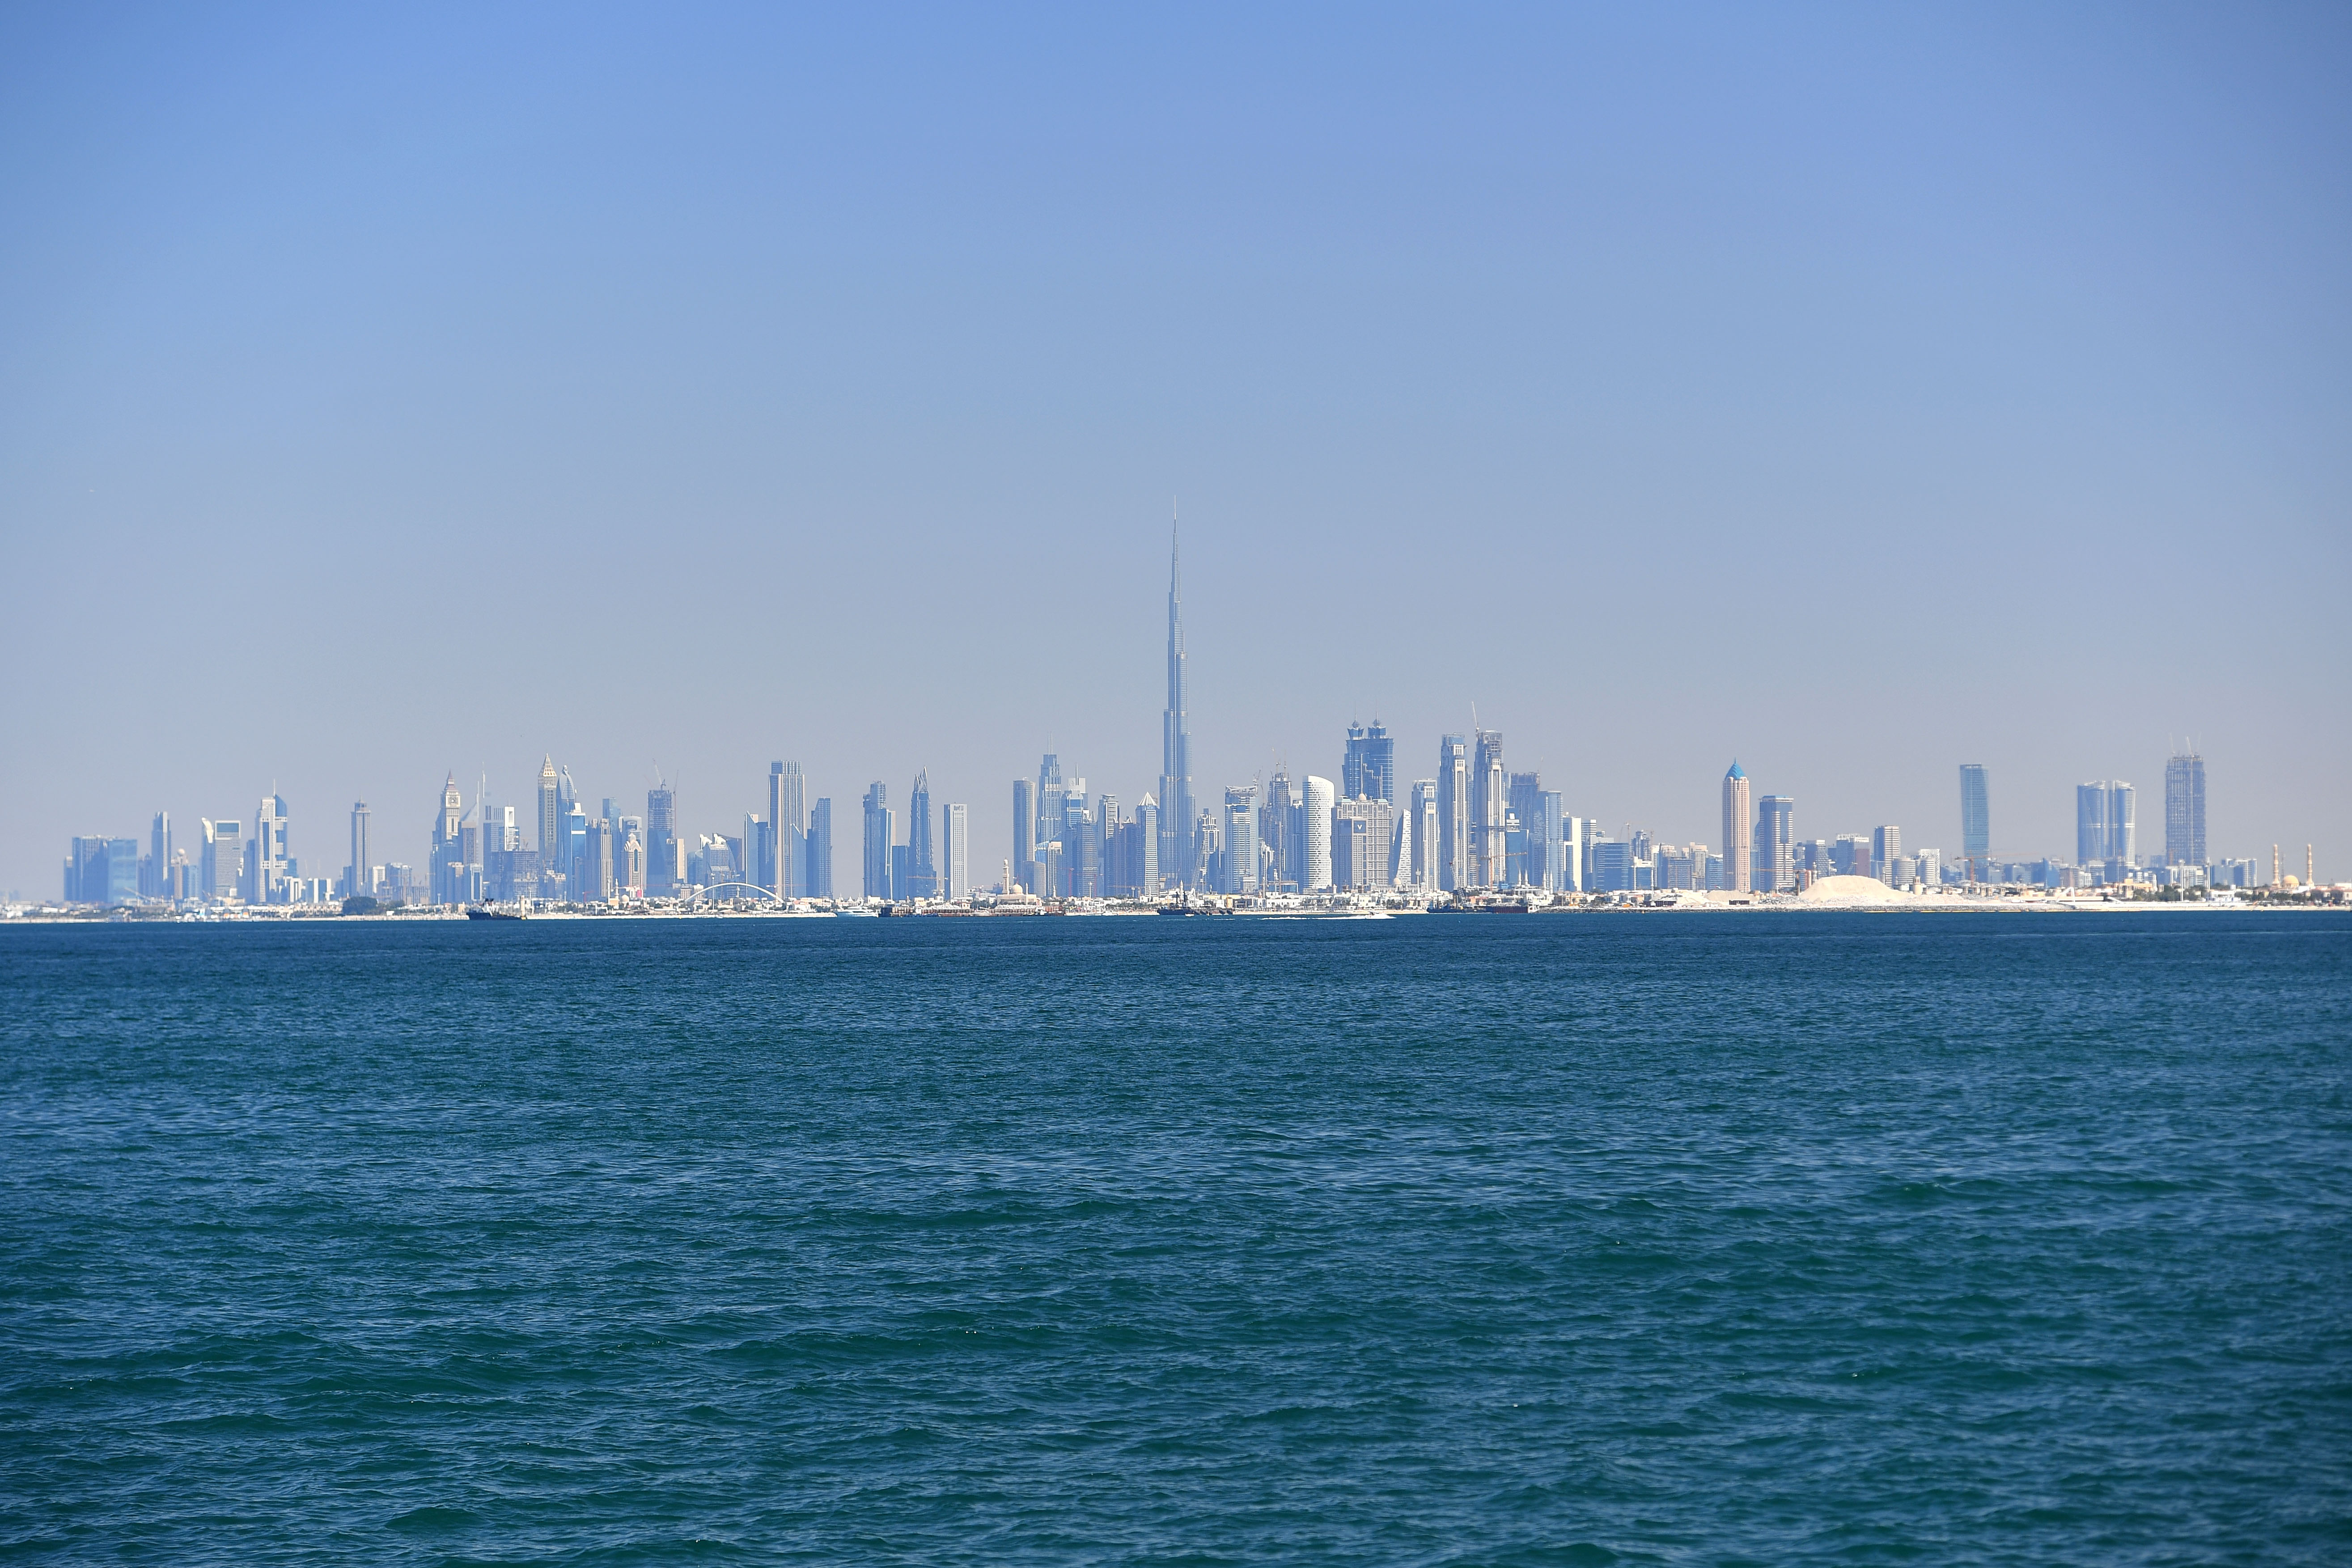 The skyline of Dubai.